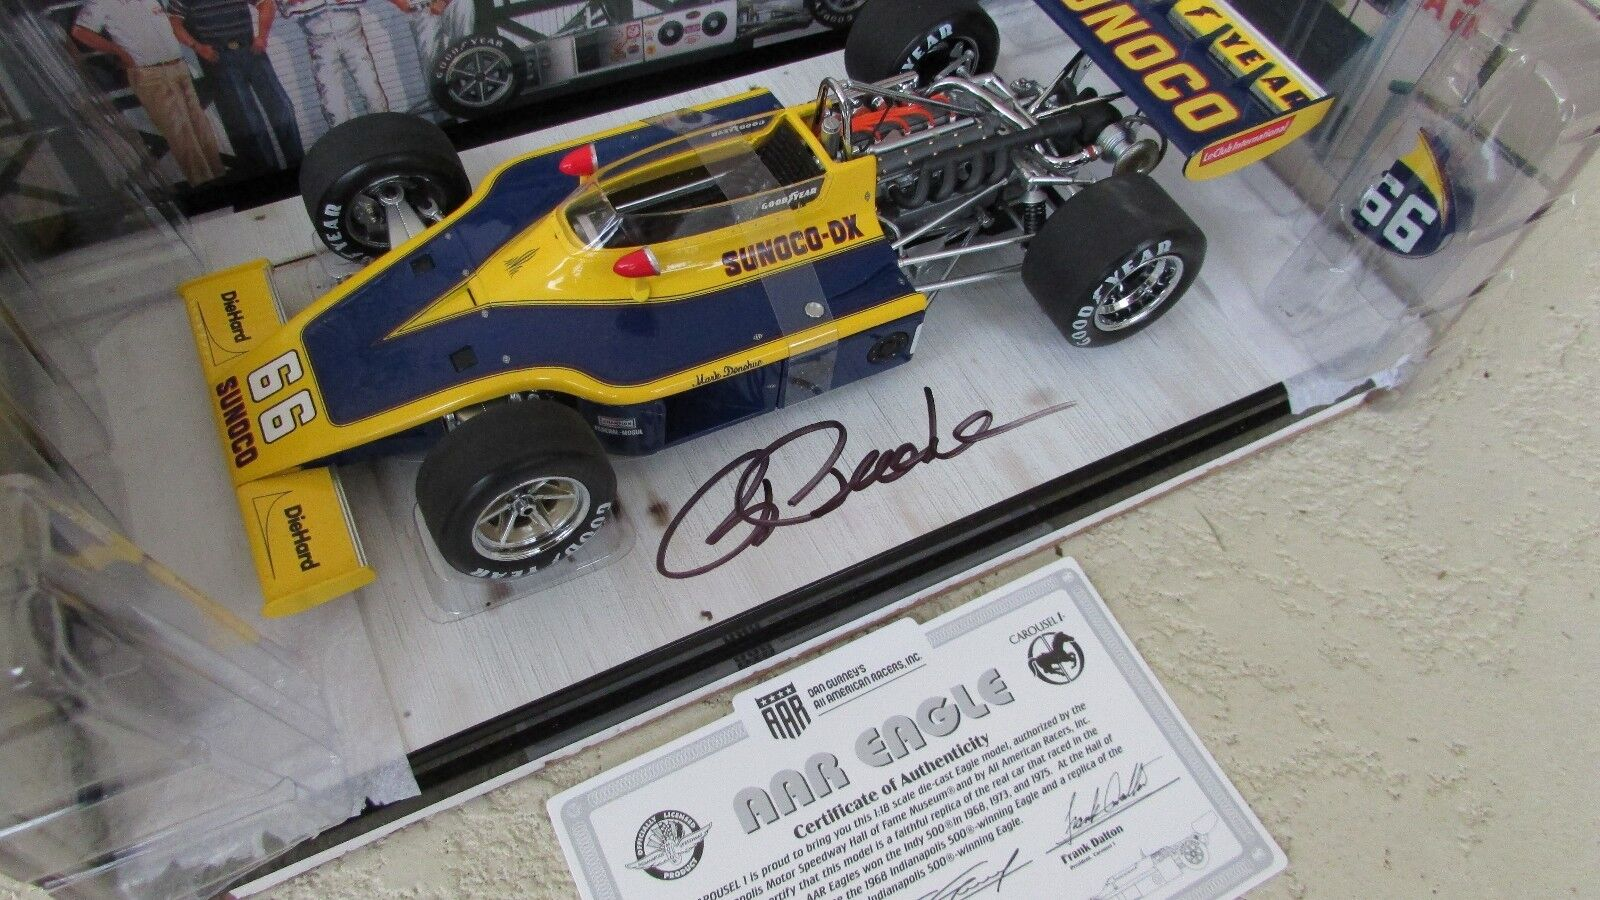 Carousel 1 Indy Indy Indy Eagle race car 1973 Sunoco Mark Donohue SIGNED by Rodger Penske dfb9e7